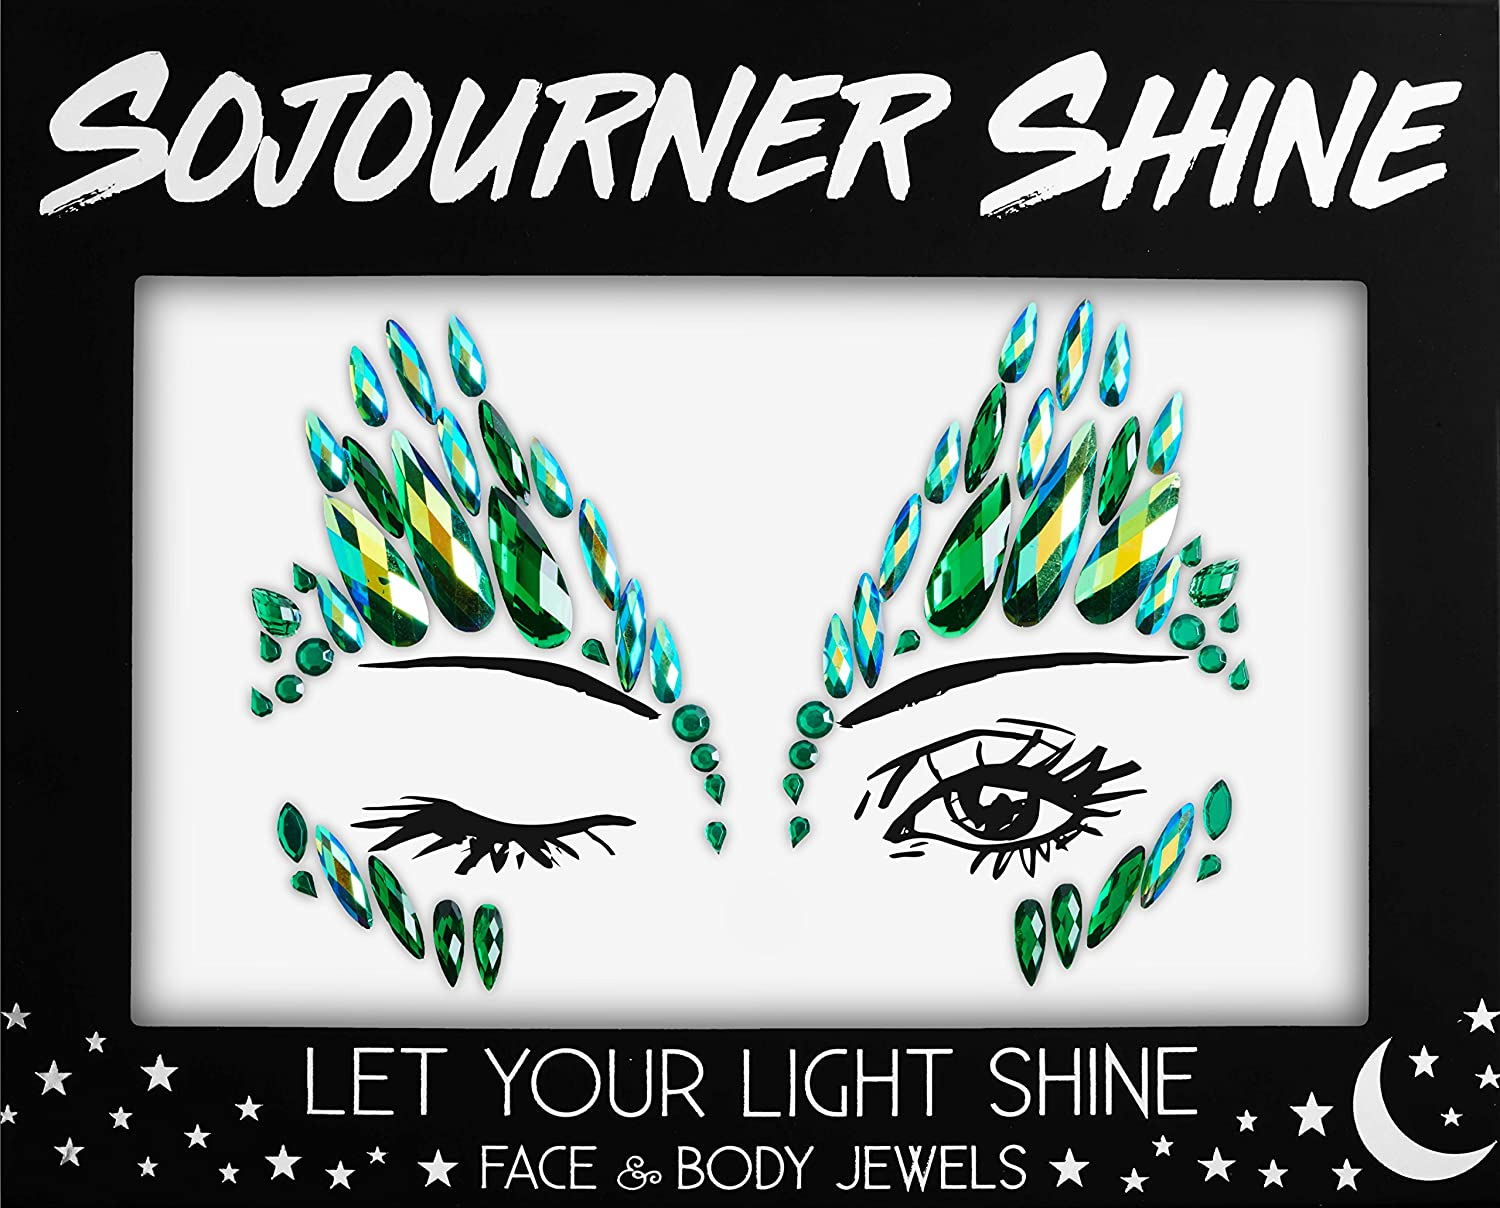 Face Jewels Glitter Gems Rhinestones – Eye Body Jewels Gems | Rhinestone Stickers | Body Glitter Festival Rave & Party Accessories by SoJourner (Forest Fairy) SoJourner Bags